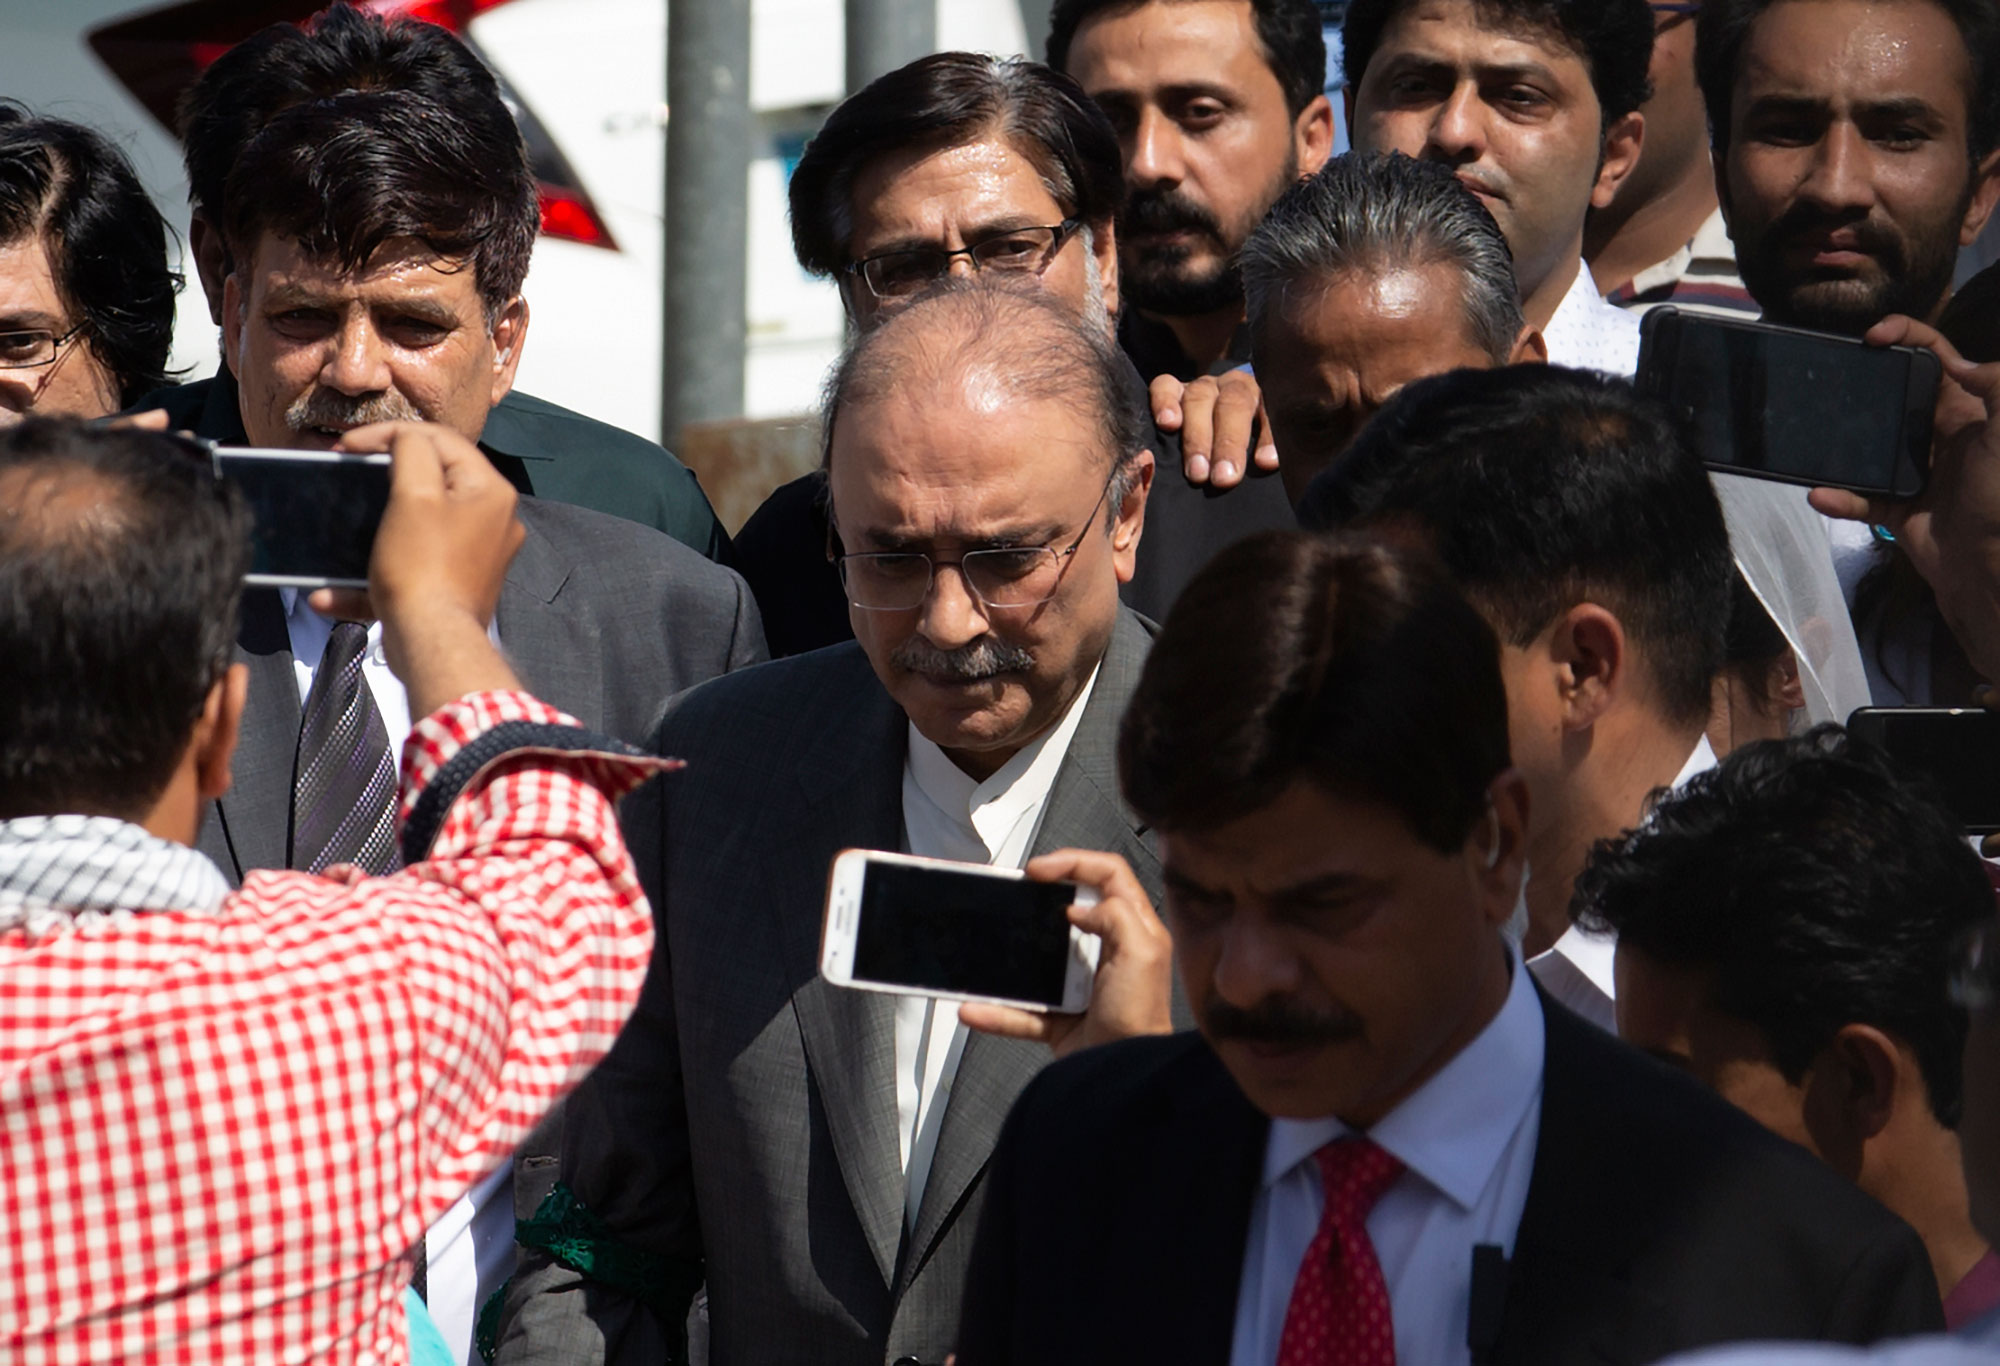 Asif Ali Zardari (centre) leaves the High Court building, in Islamabad, Pakistan, on June 10, 2019.